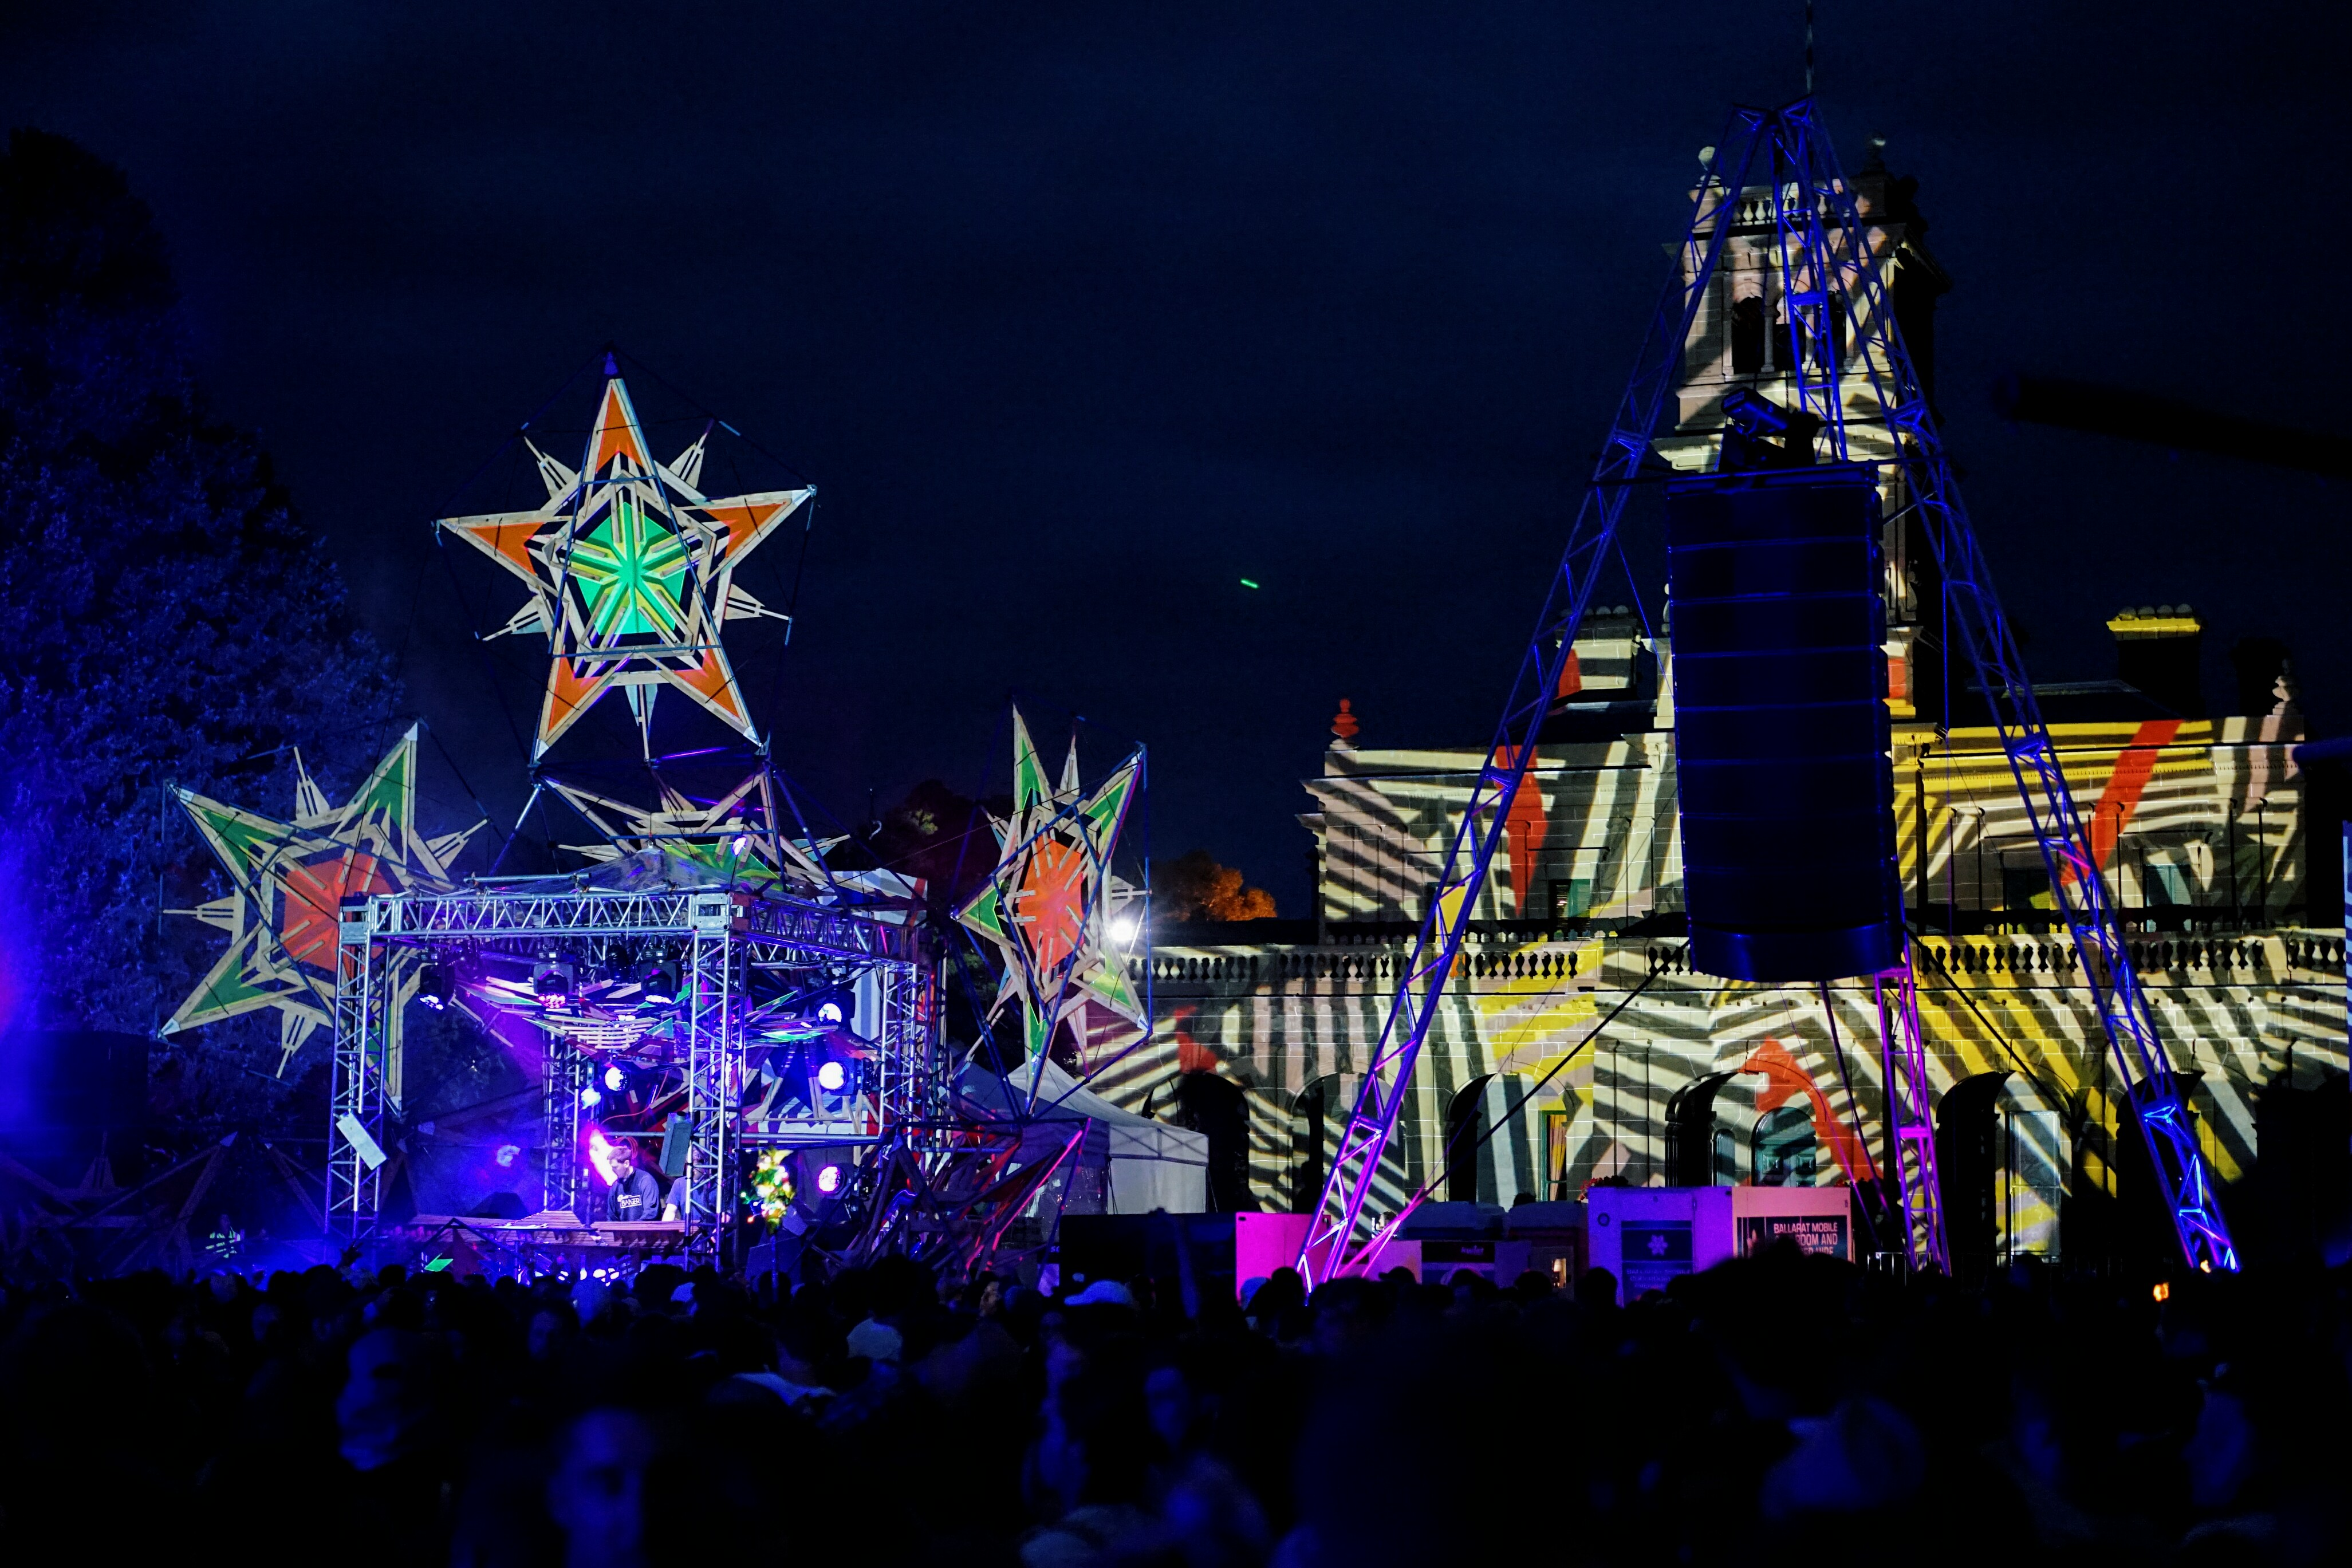 The festival grounds really come alive a night as the garden, stage and mansion are lit up.